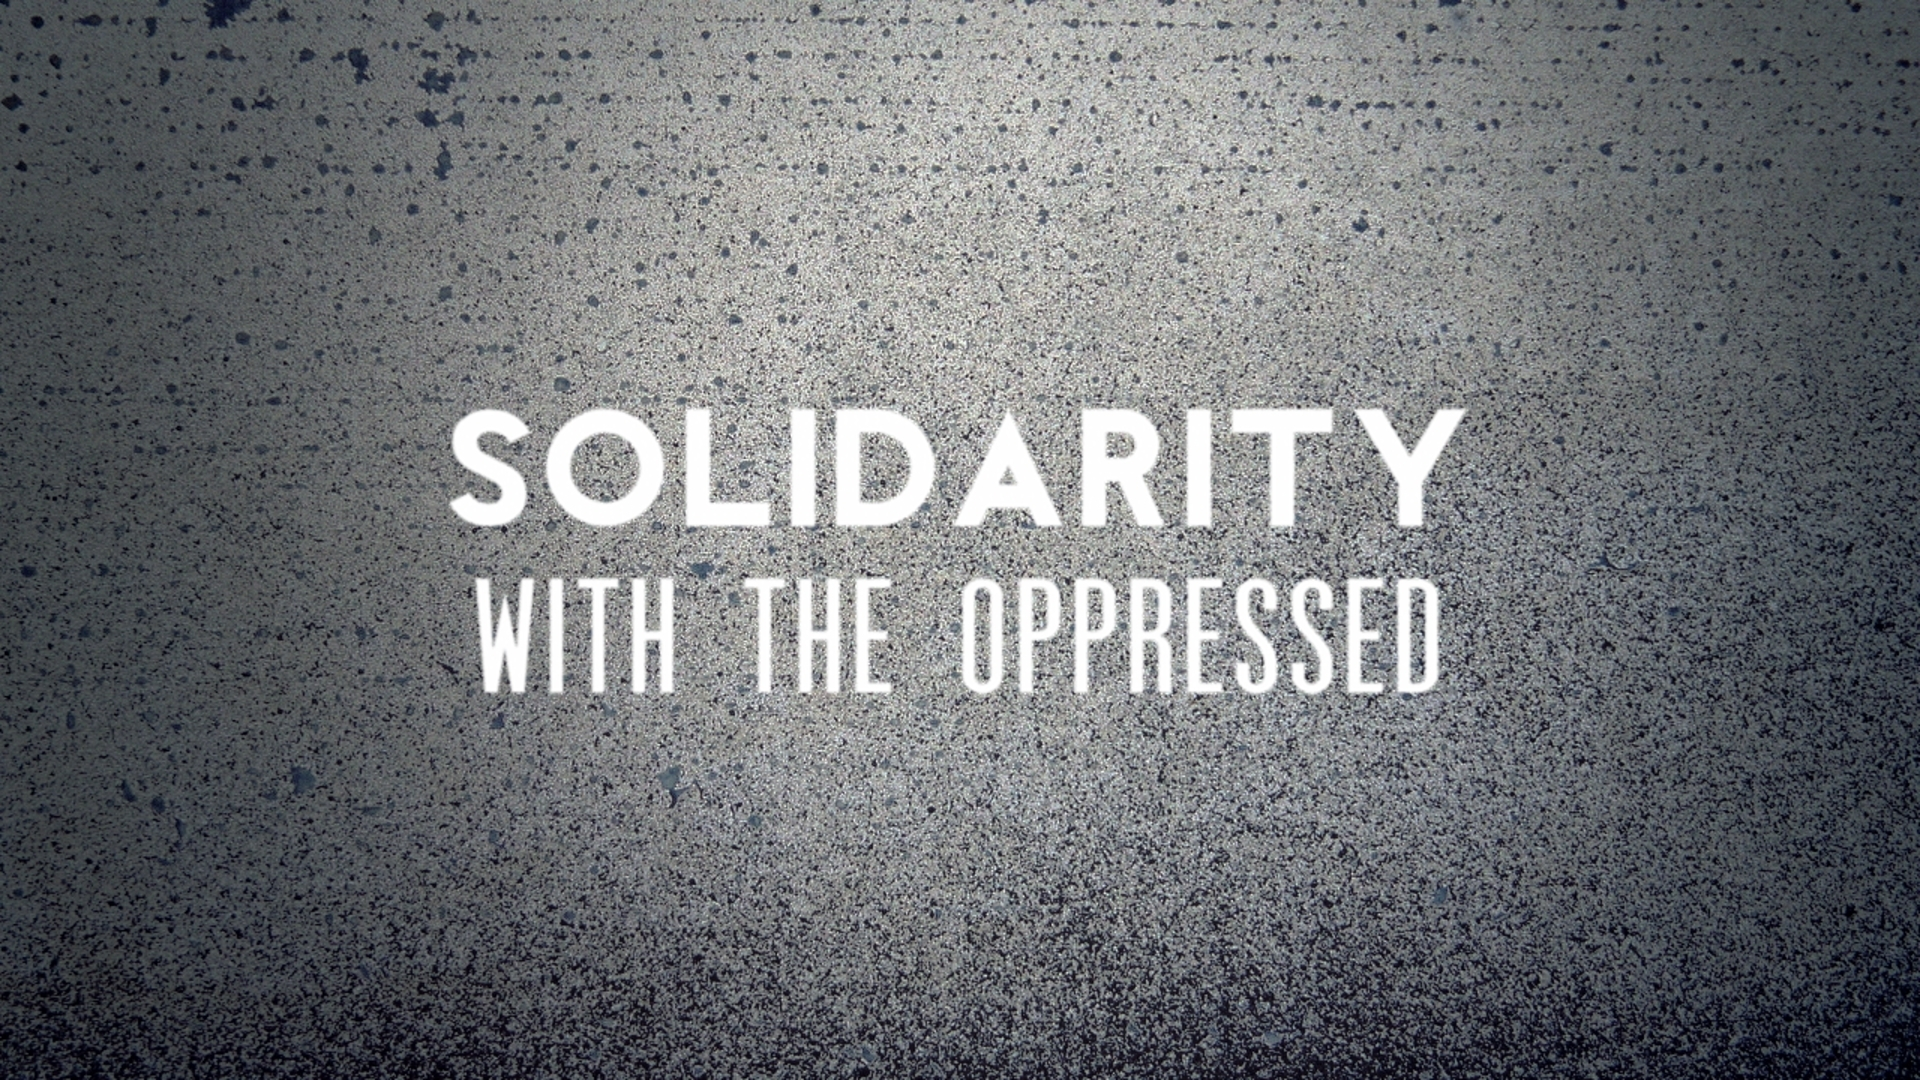 Solidarity with the Oppressed